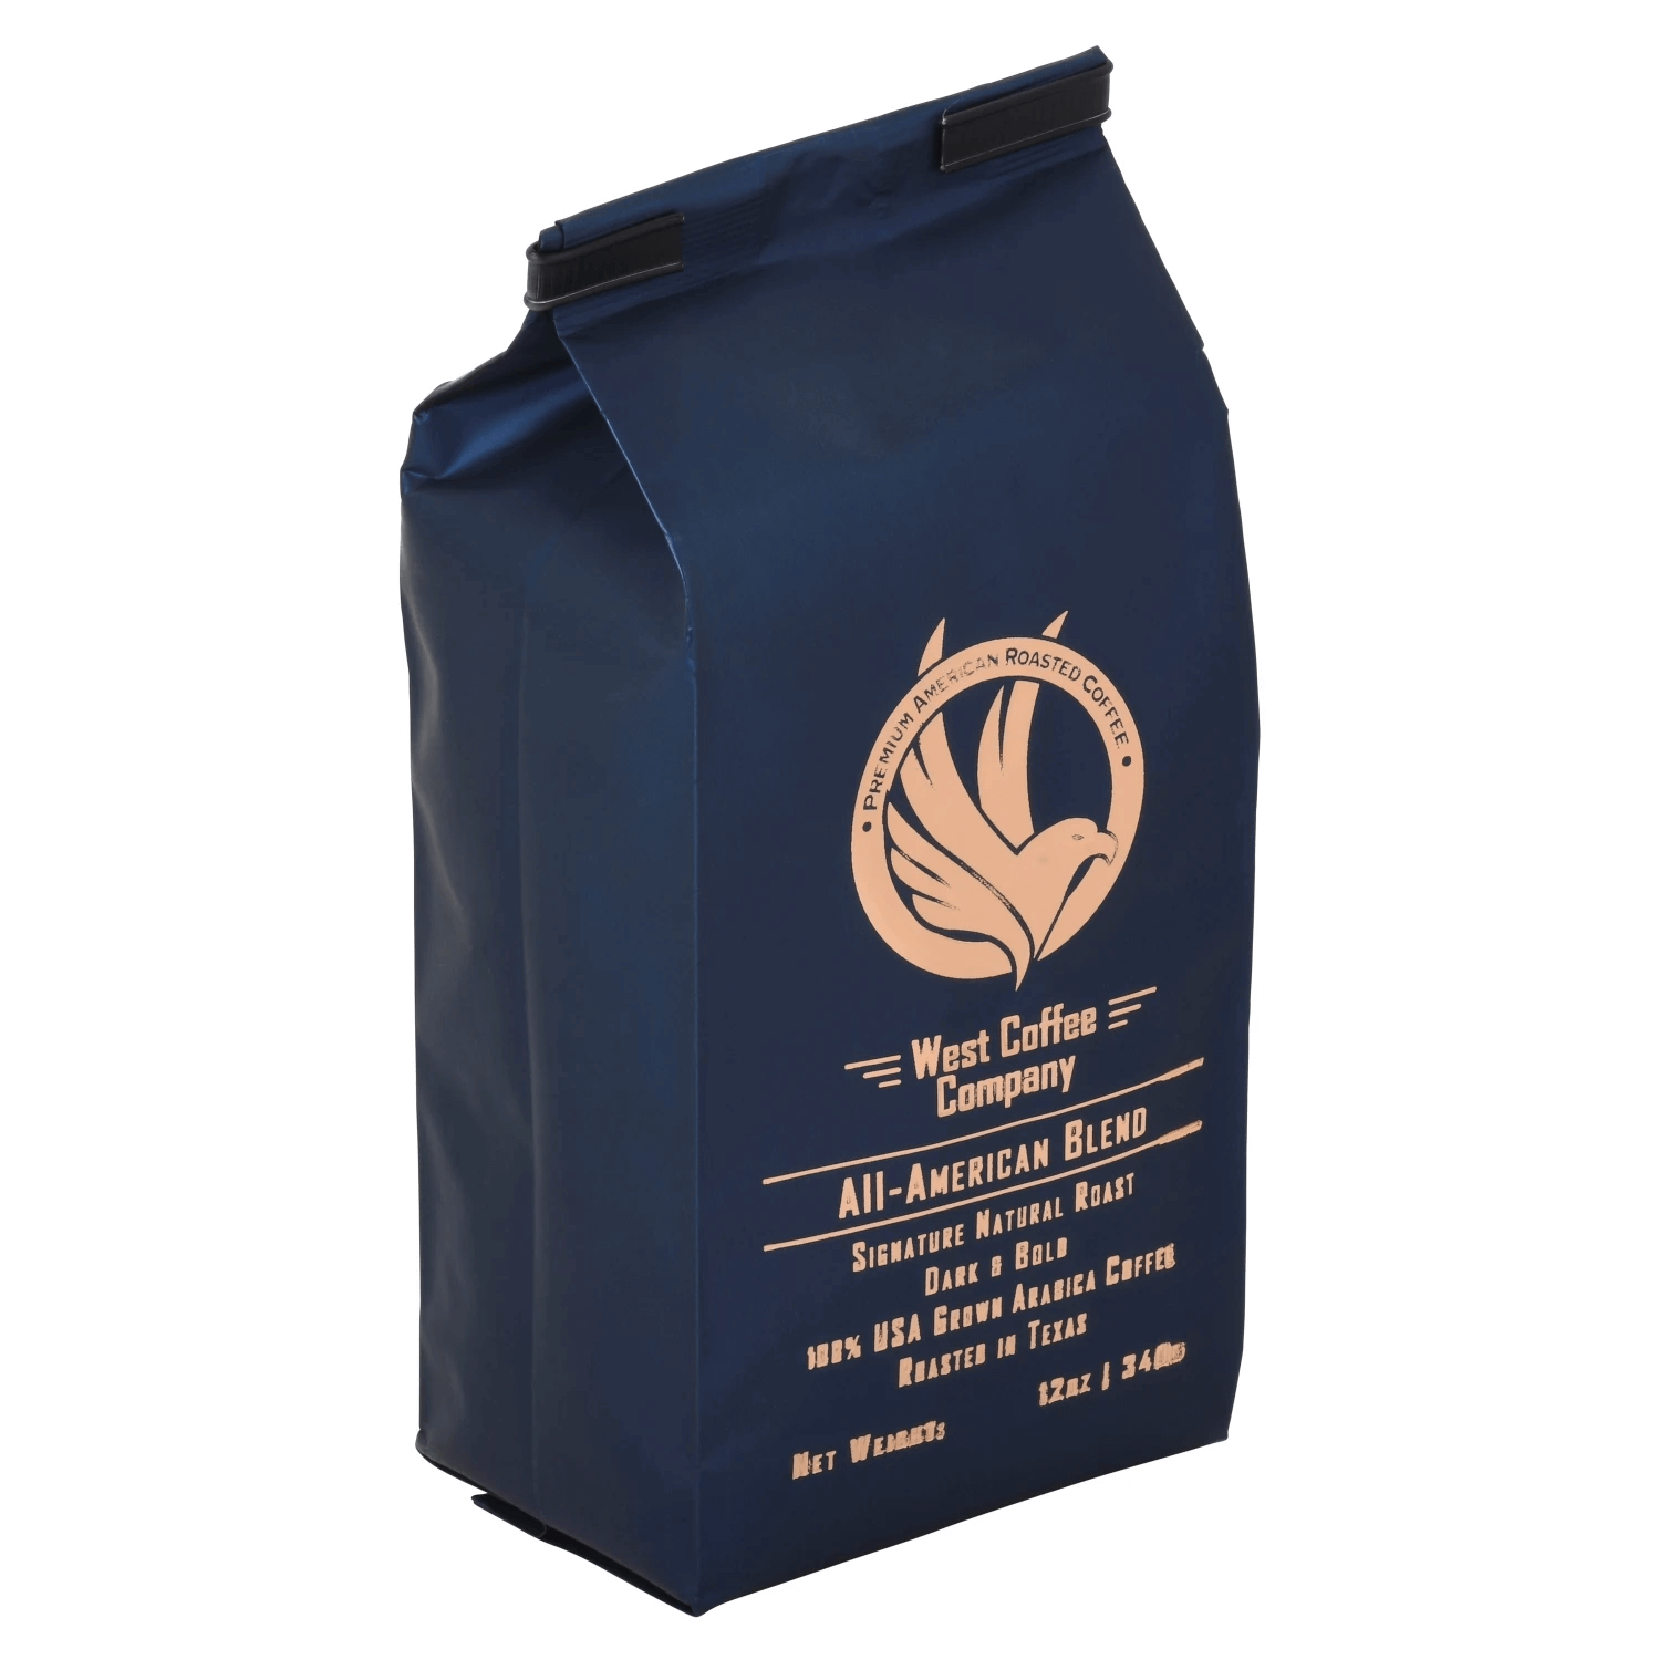 All-American Blend from West Coffee Company